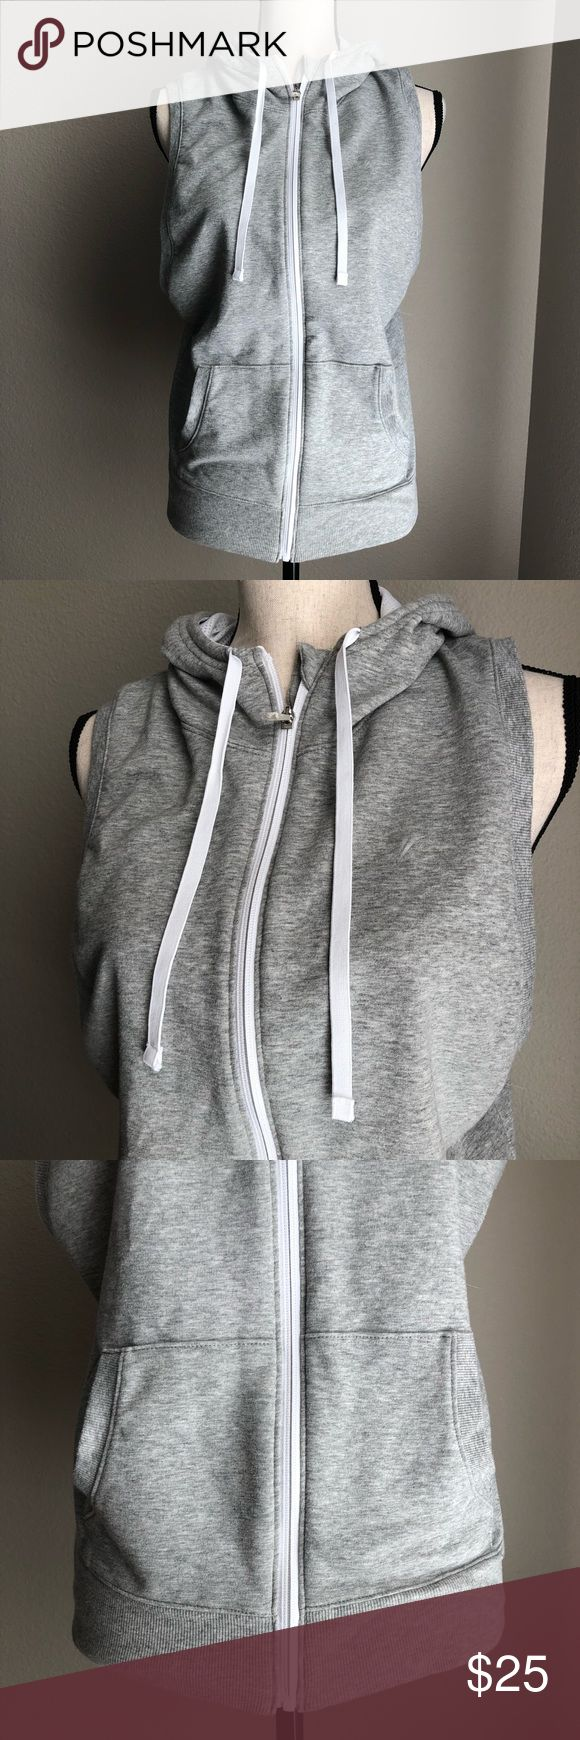 OLD NAVY Performance Vest with Hood in Small NWOT Size Small NWOT Excellent Condition Old Navy Tops Sweatshirts & Hoodies